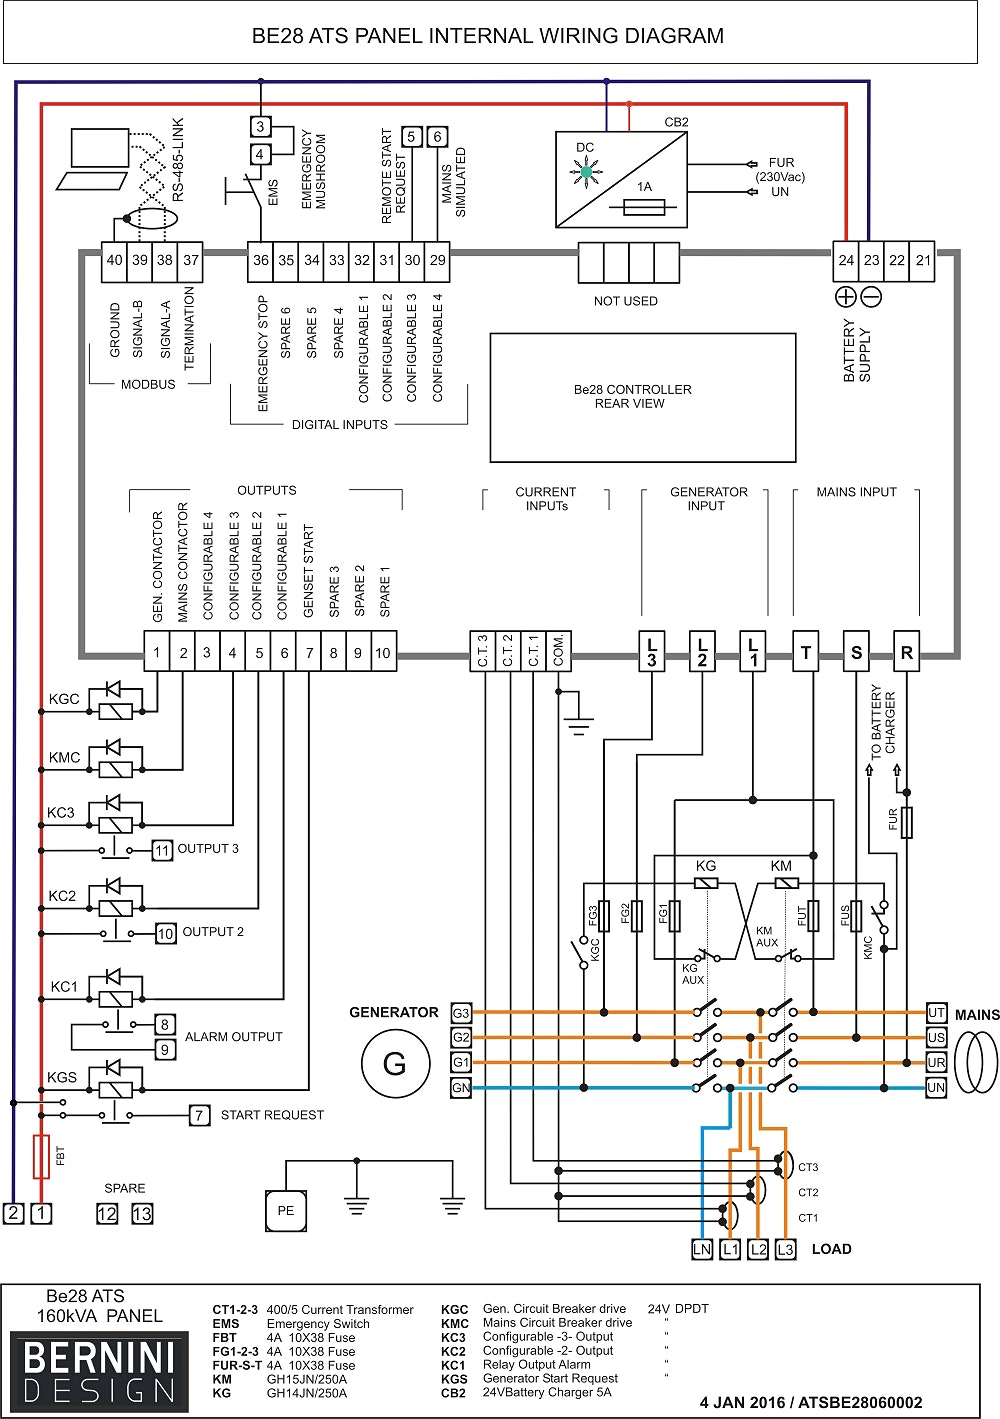 lenel access control wiring diagram Collection-Lenel Access Control Wiring Diagram And Beauteous Carlplant In Inside 1320 7-n